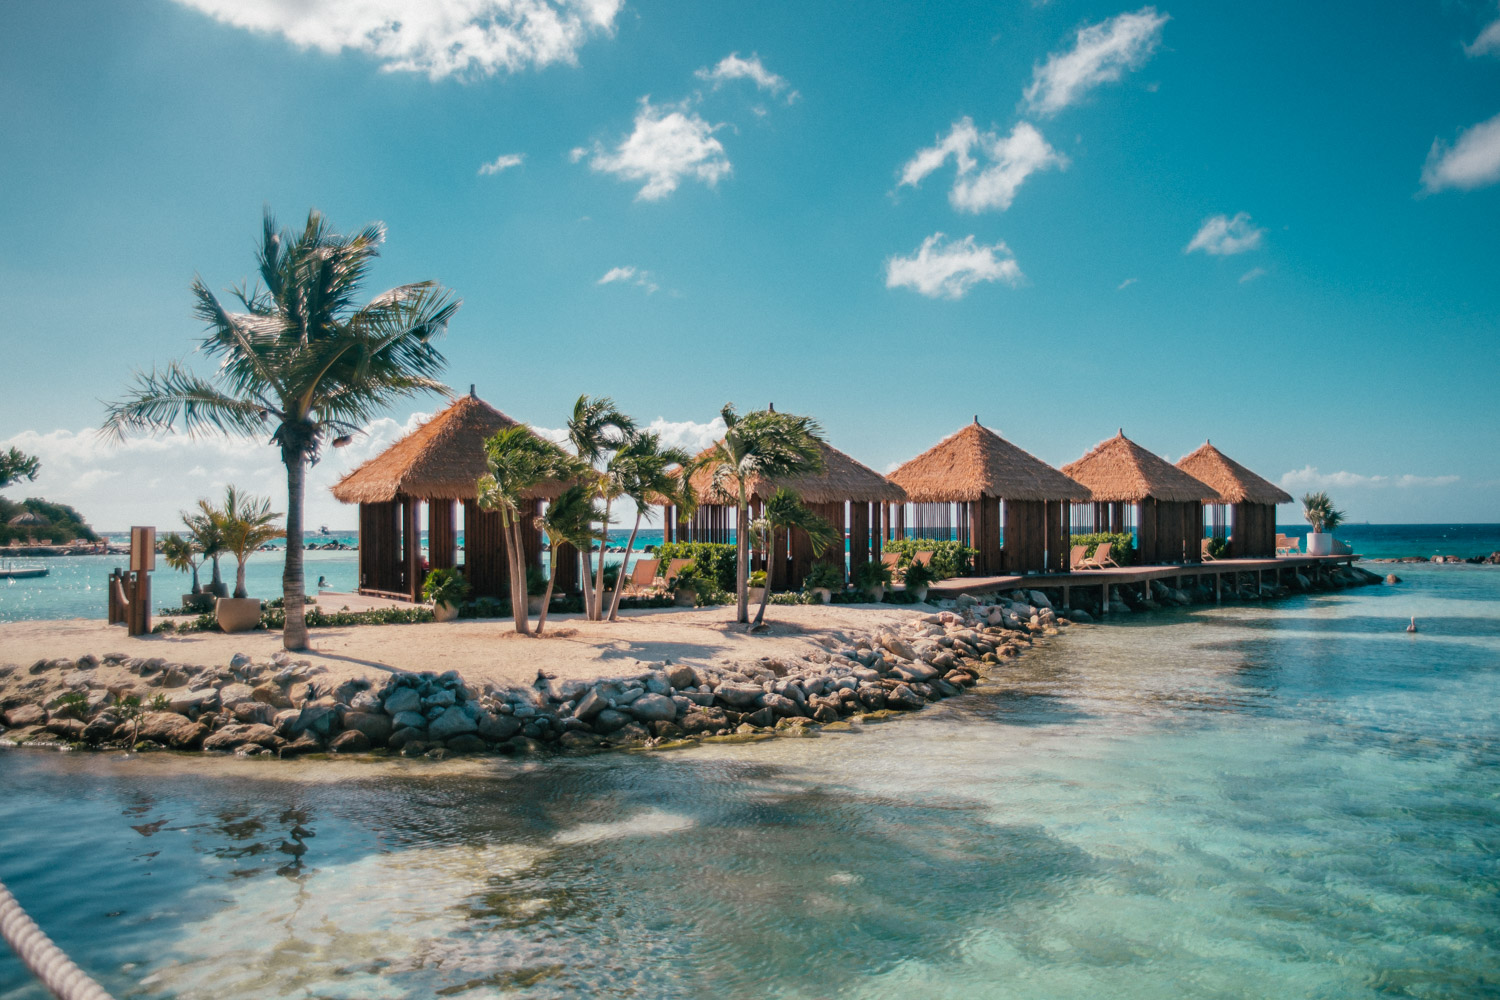 Renaissance Private Island | The Ultimate Aruba Travel Guide